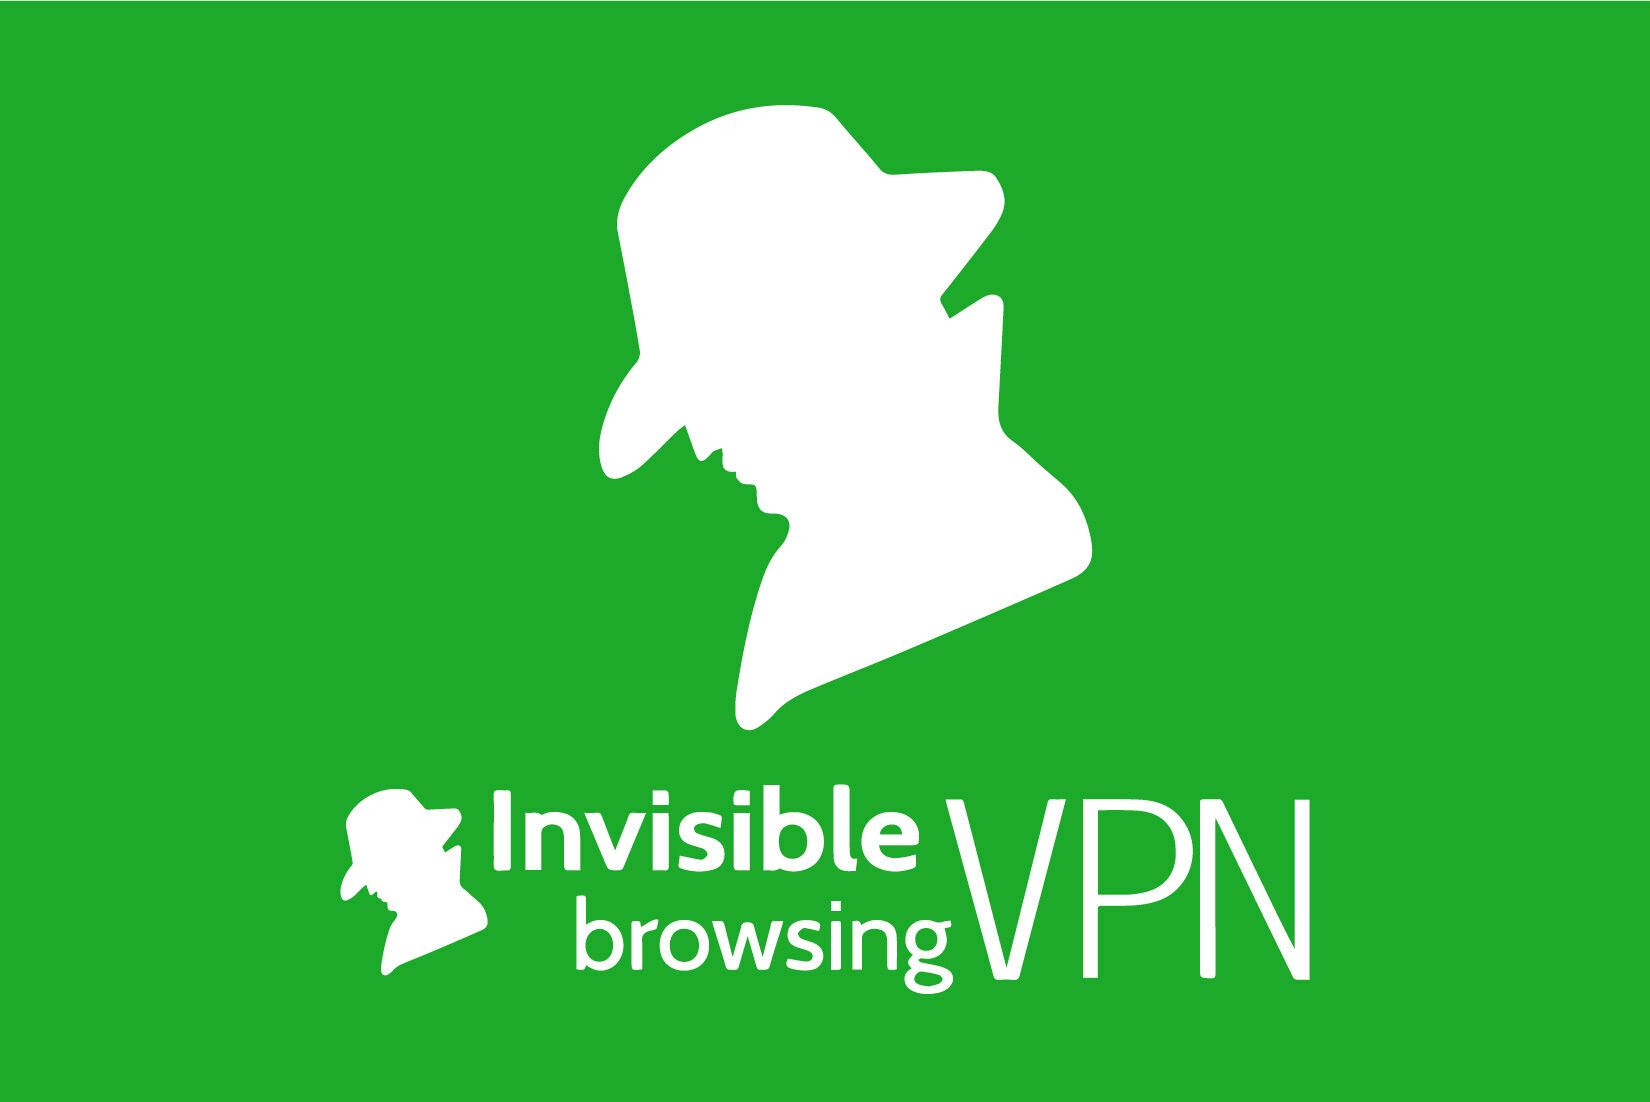 Get 50% Off on ibVPN Ultimate VPN Plan